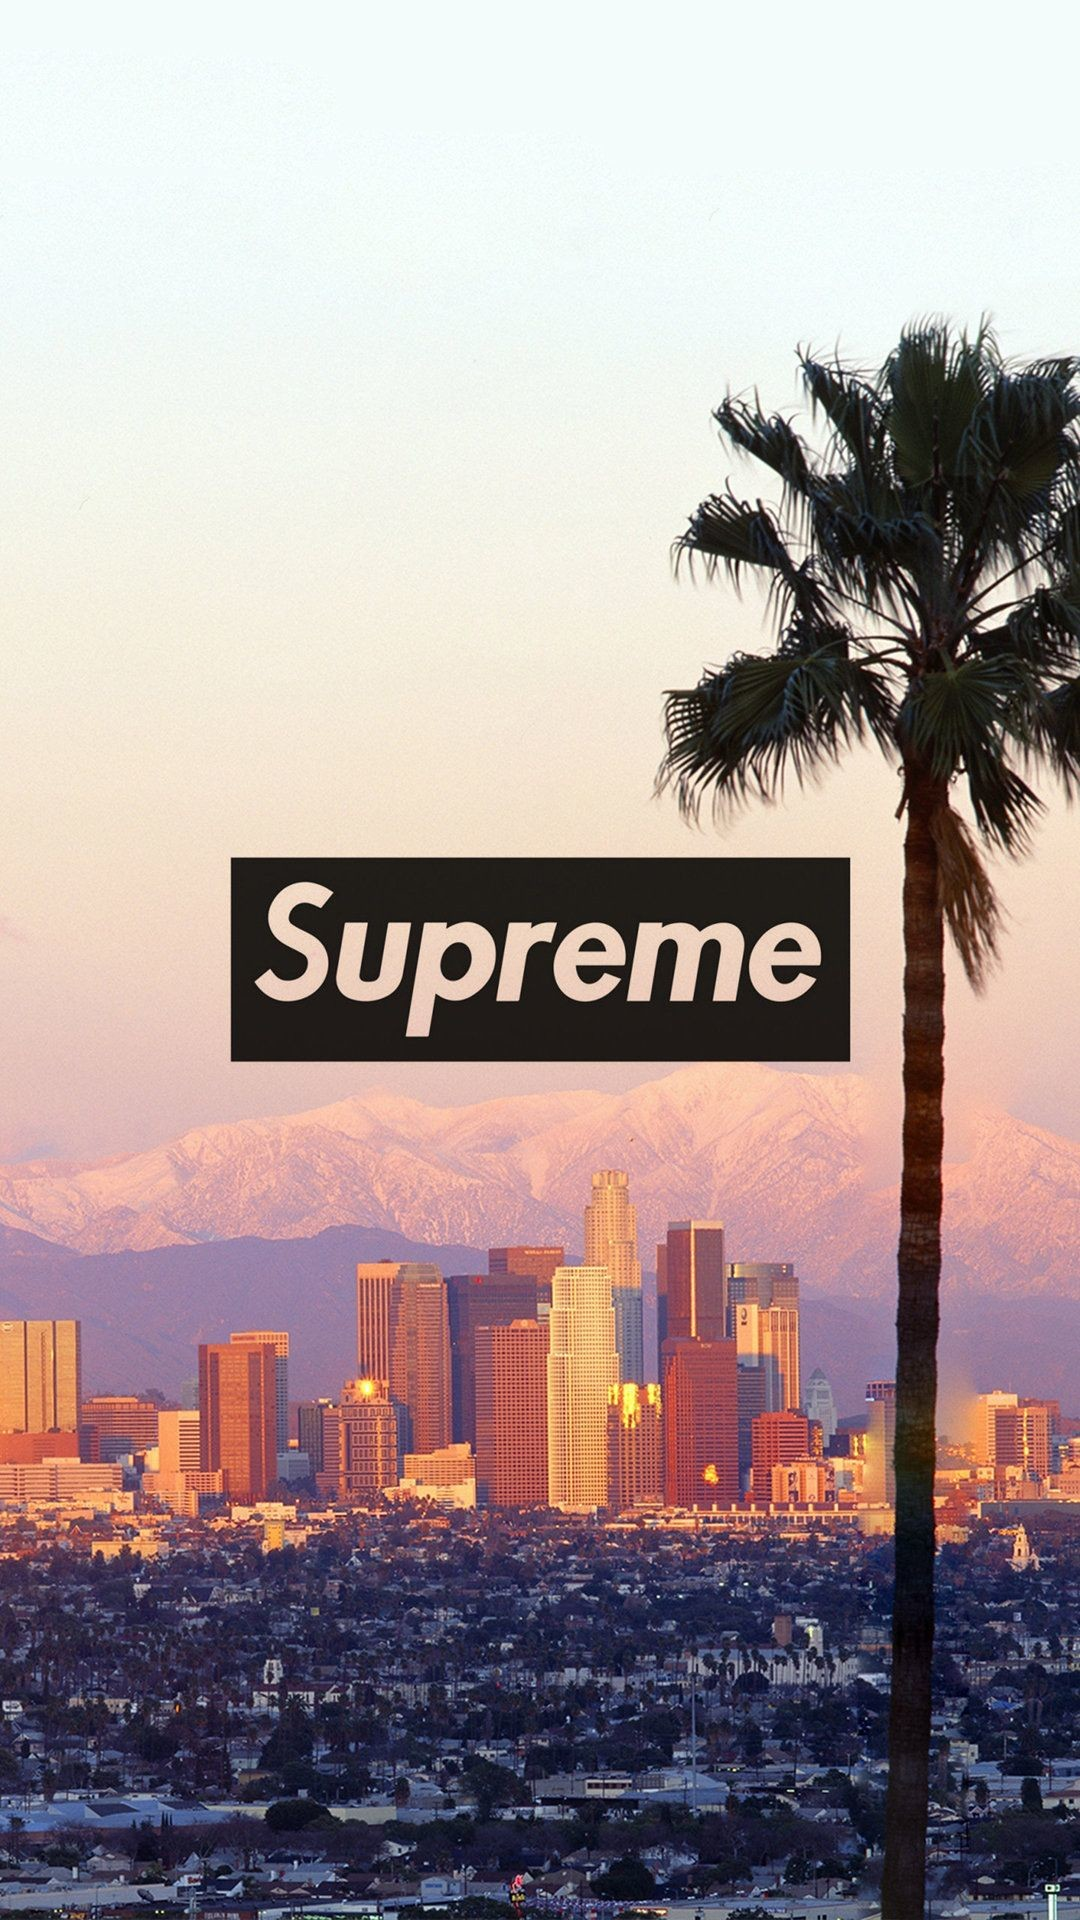 Res: 1080x1920, Supreme Los Angeles - Tap to see more of the Supreme wallpapers! - @mobile9